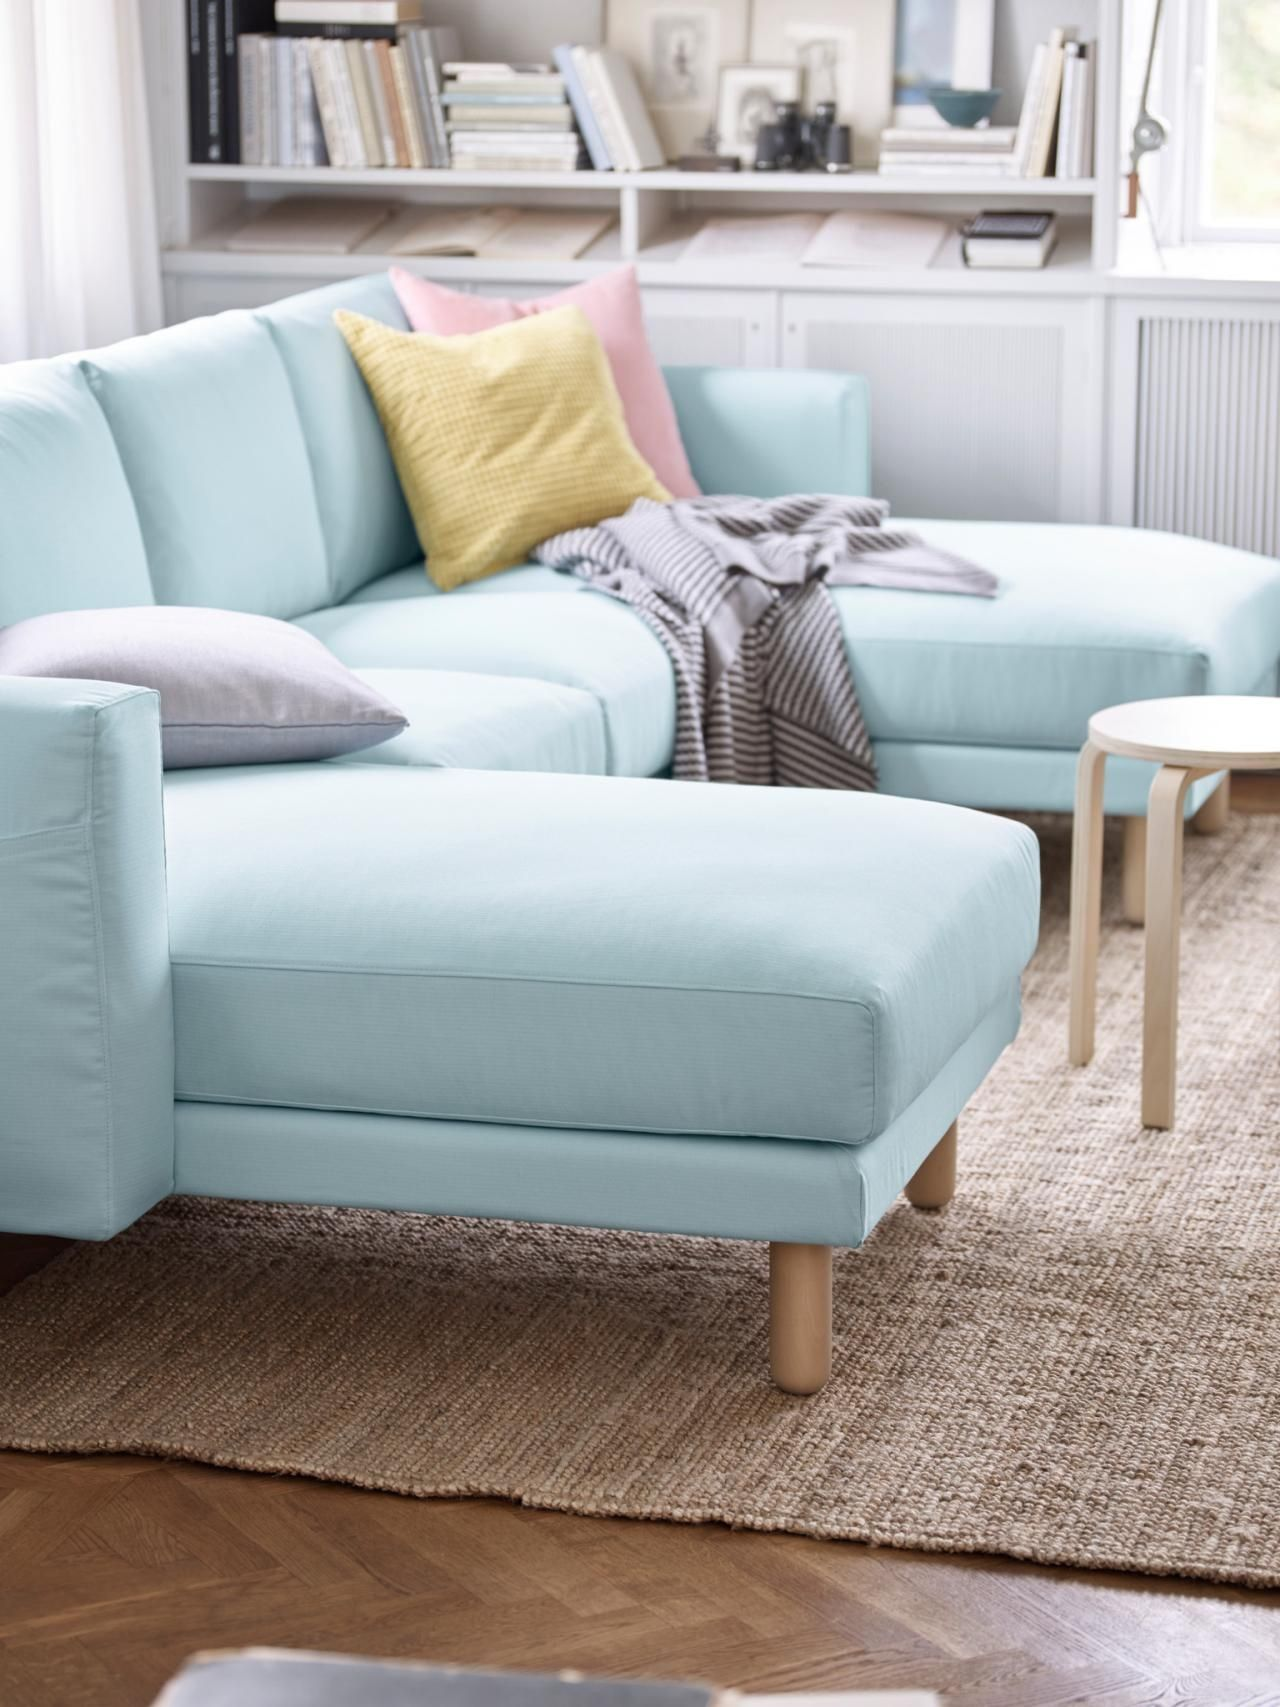 Apartment Size Sectional Sofa With Chaise in 2019 | Couches ...